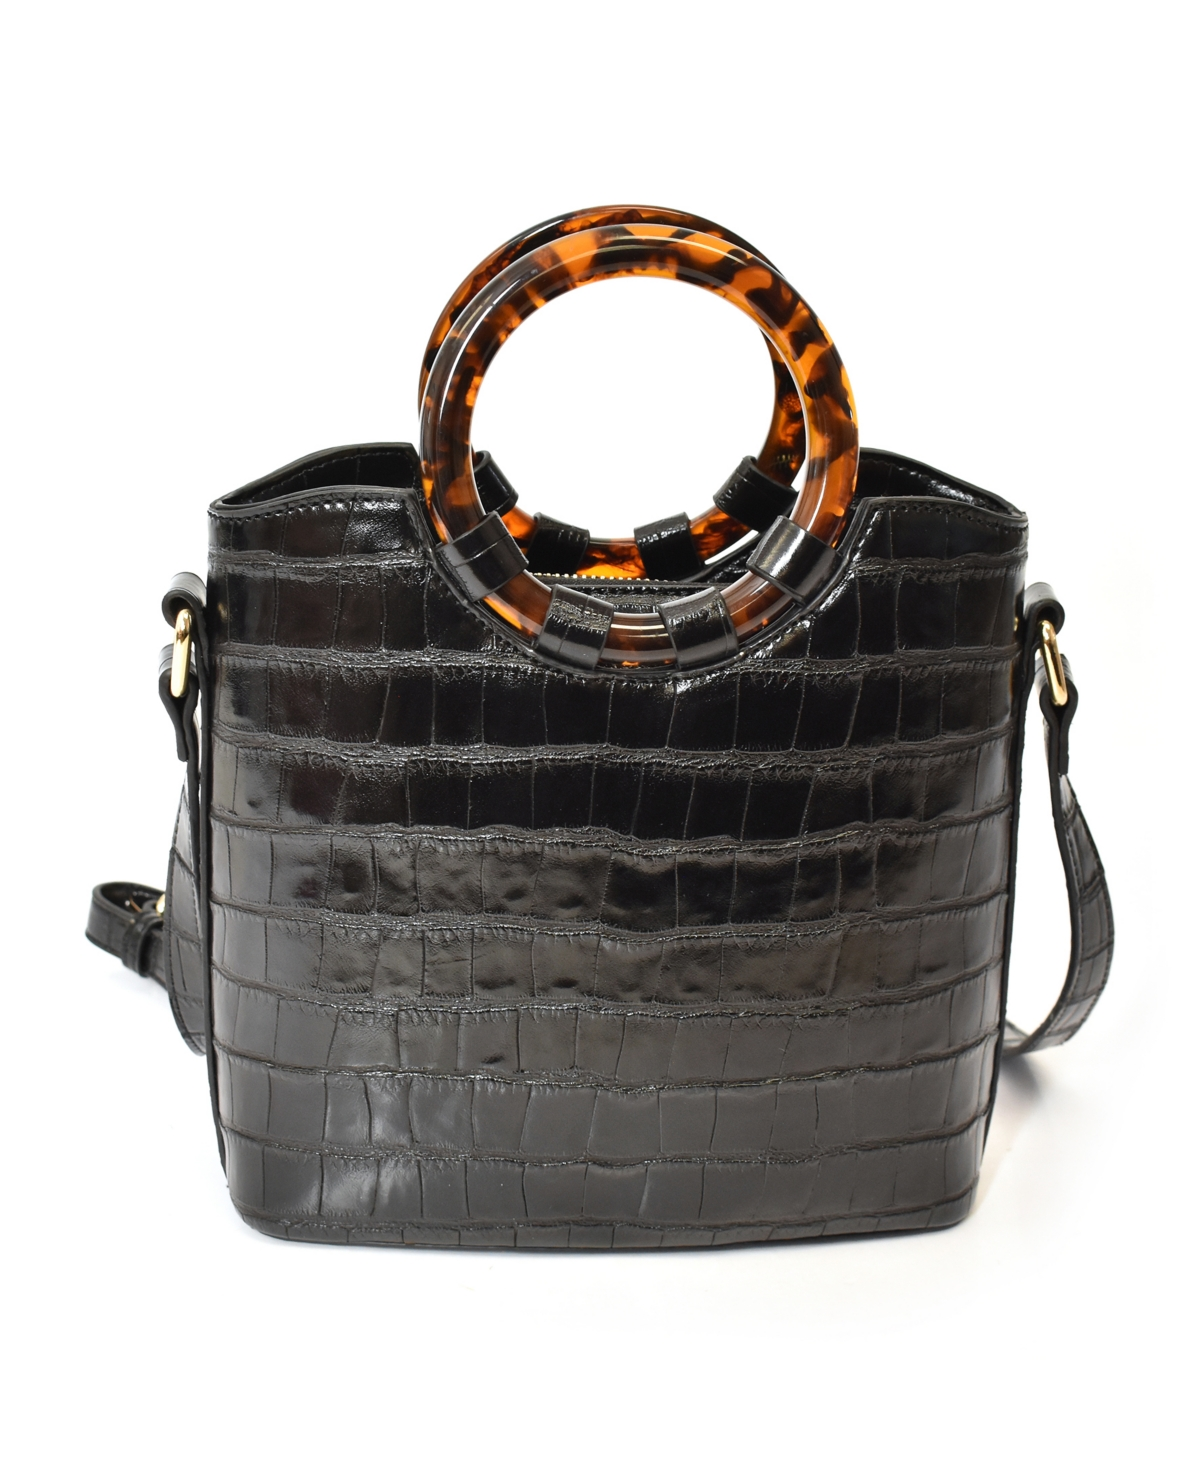 Round Tort Handles and Removable/Adjustable Strap Crossbody Bag